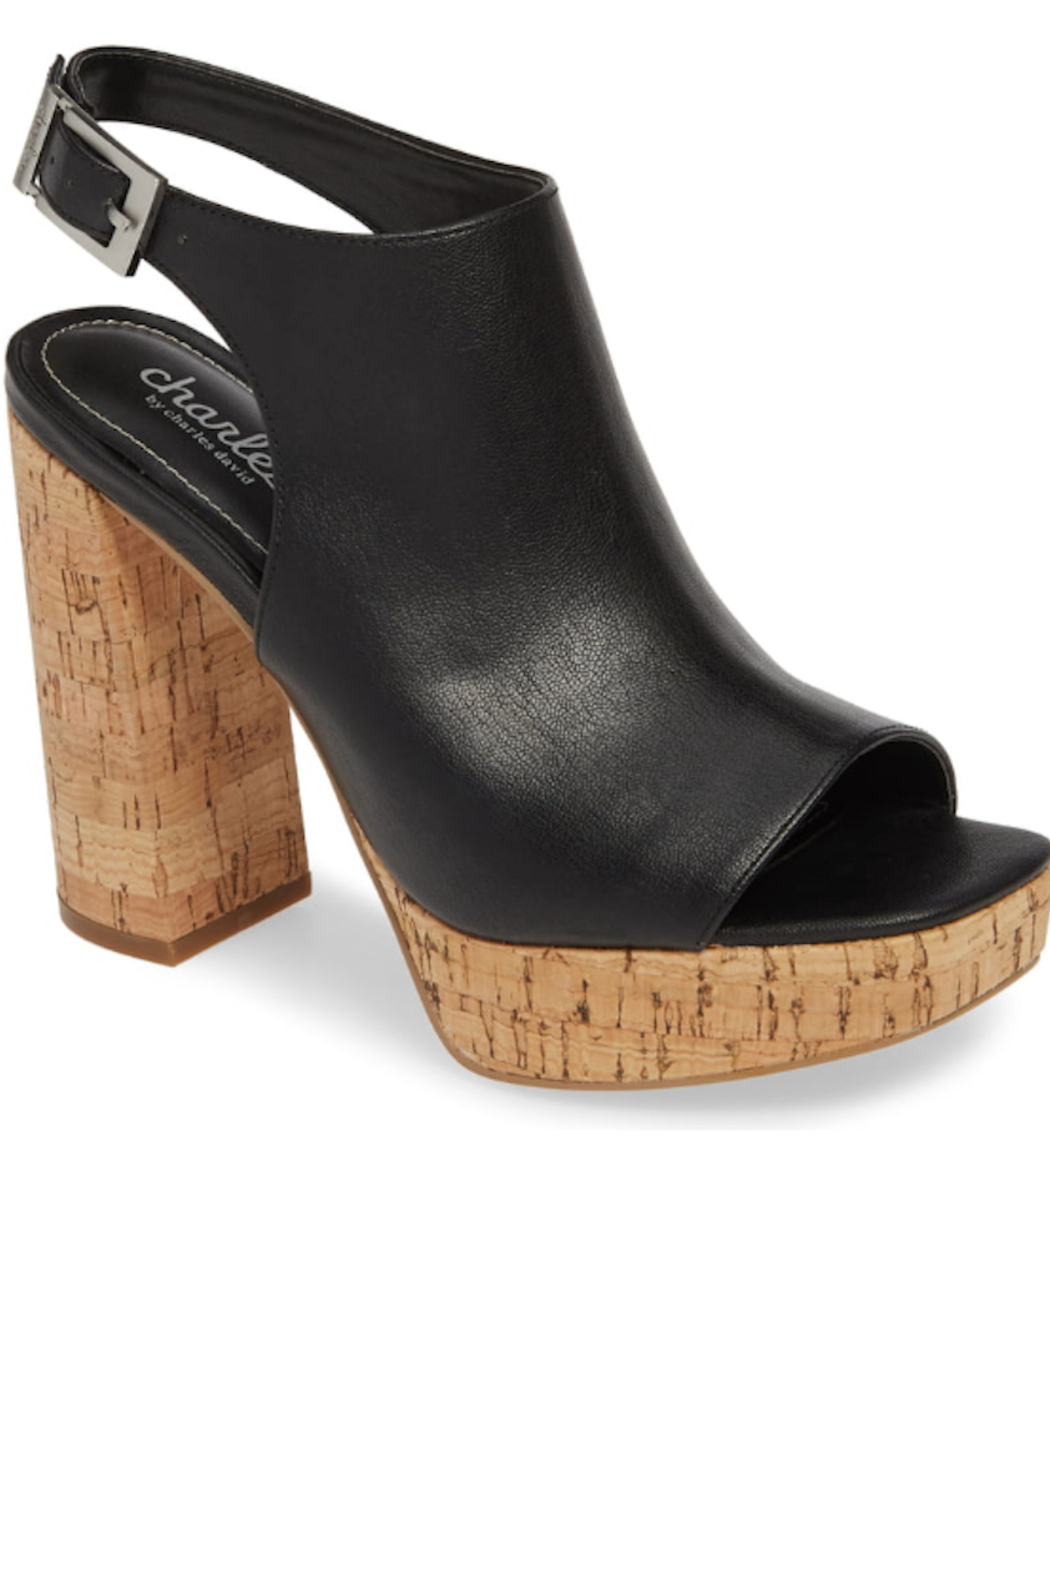 Charles David Imani Chunky Heel - Front Cropped Image